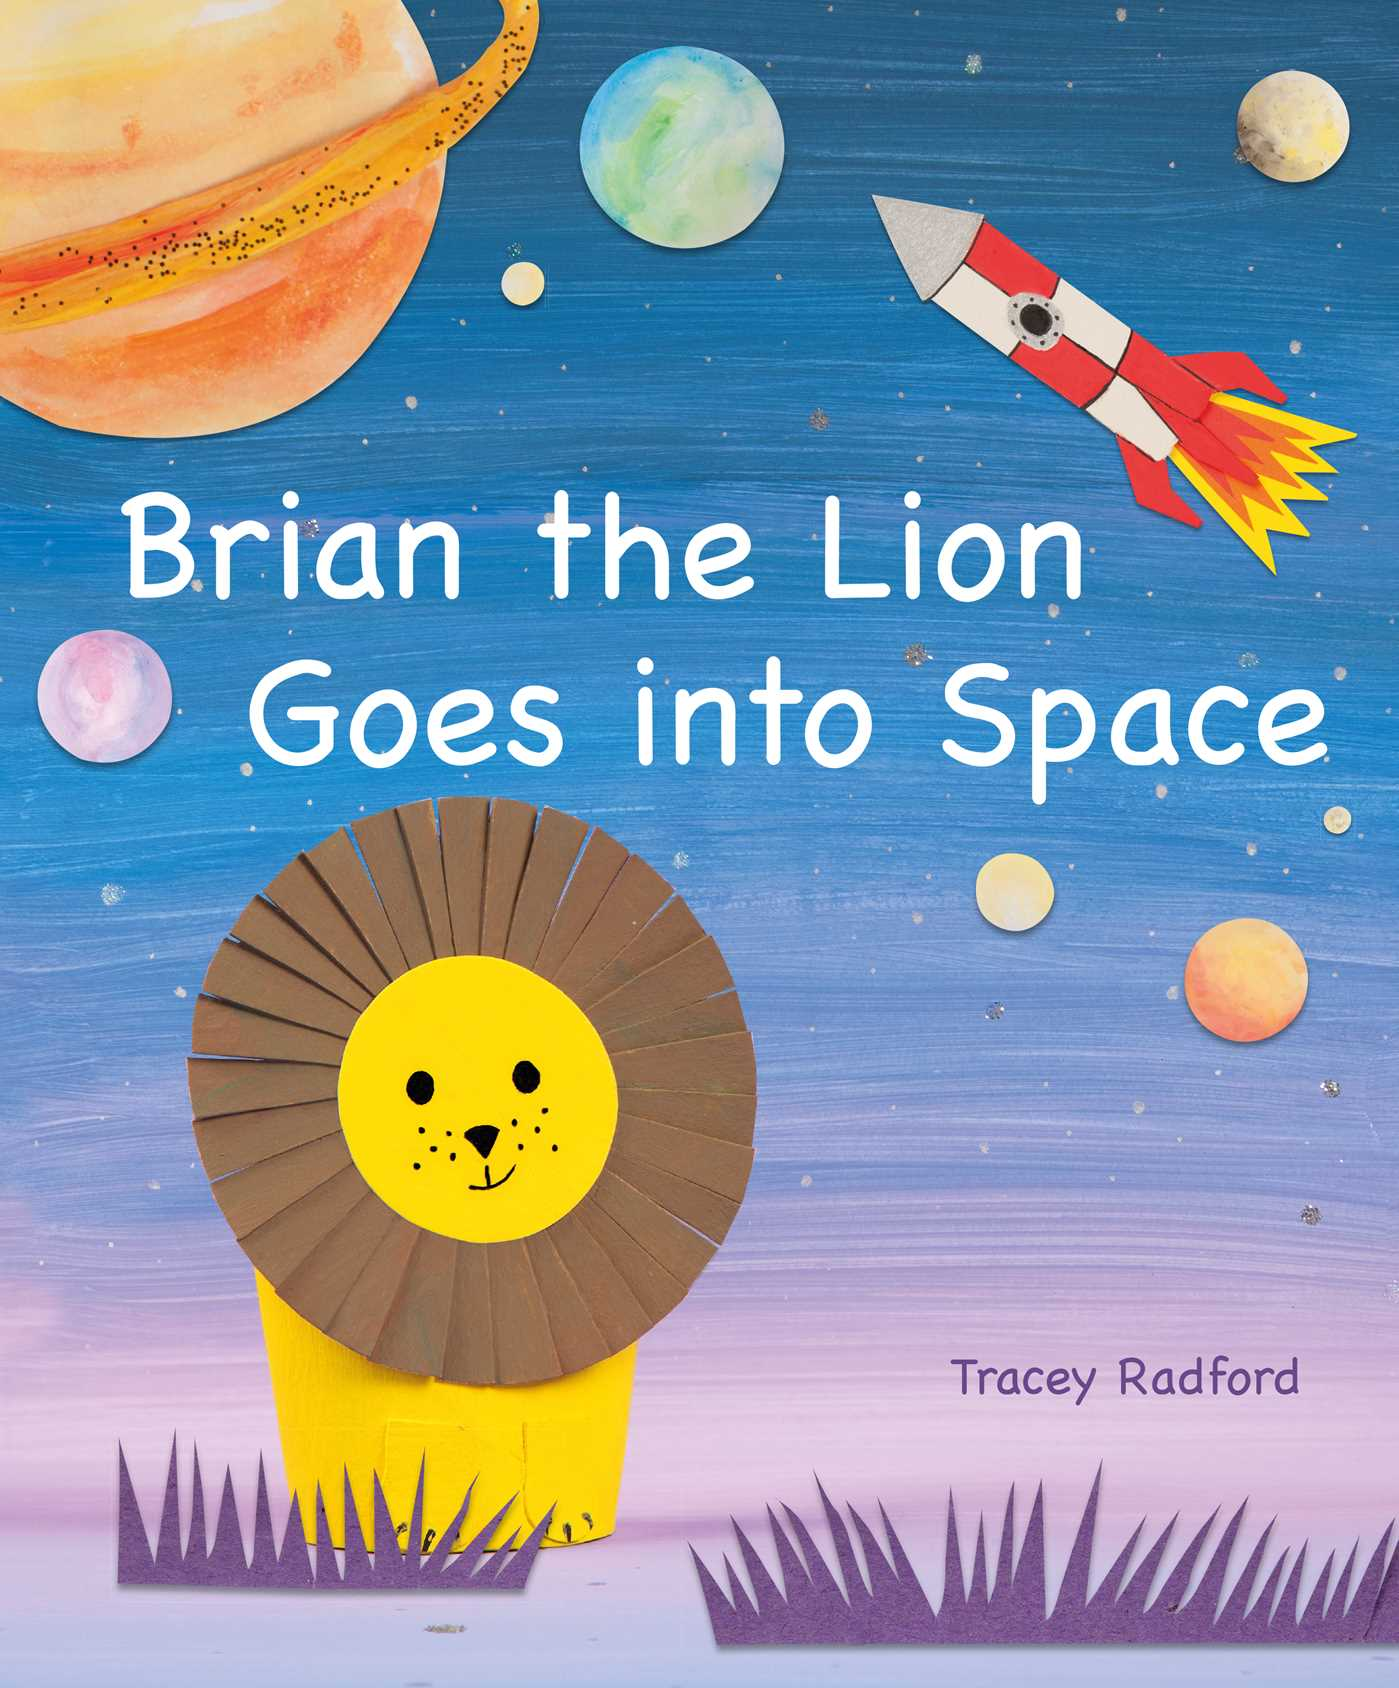 Brian the lion goes into space 9781782495765 hr